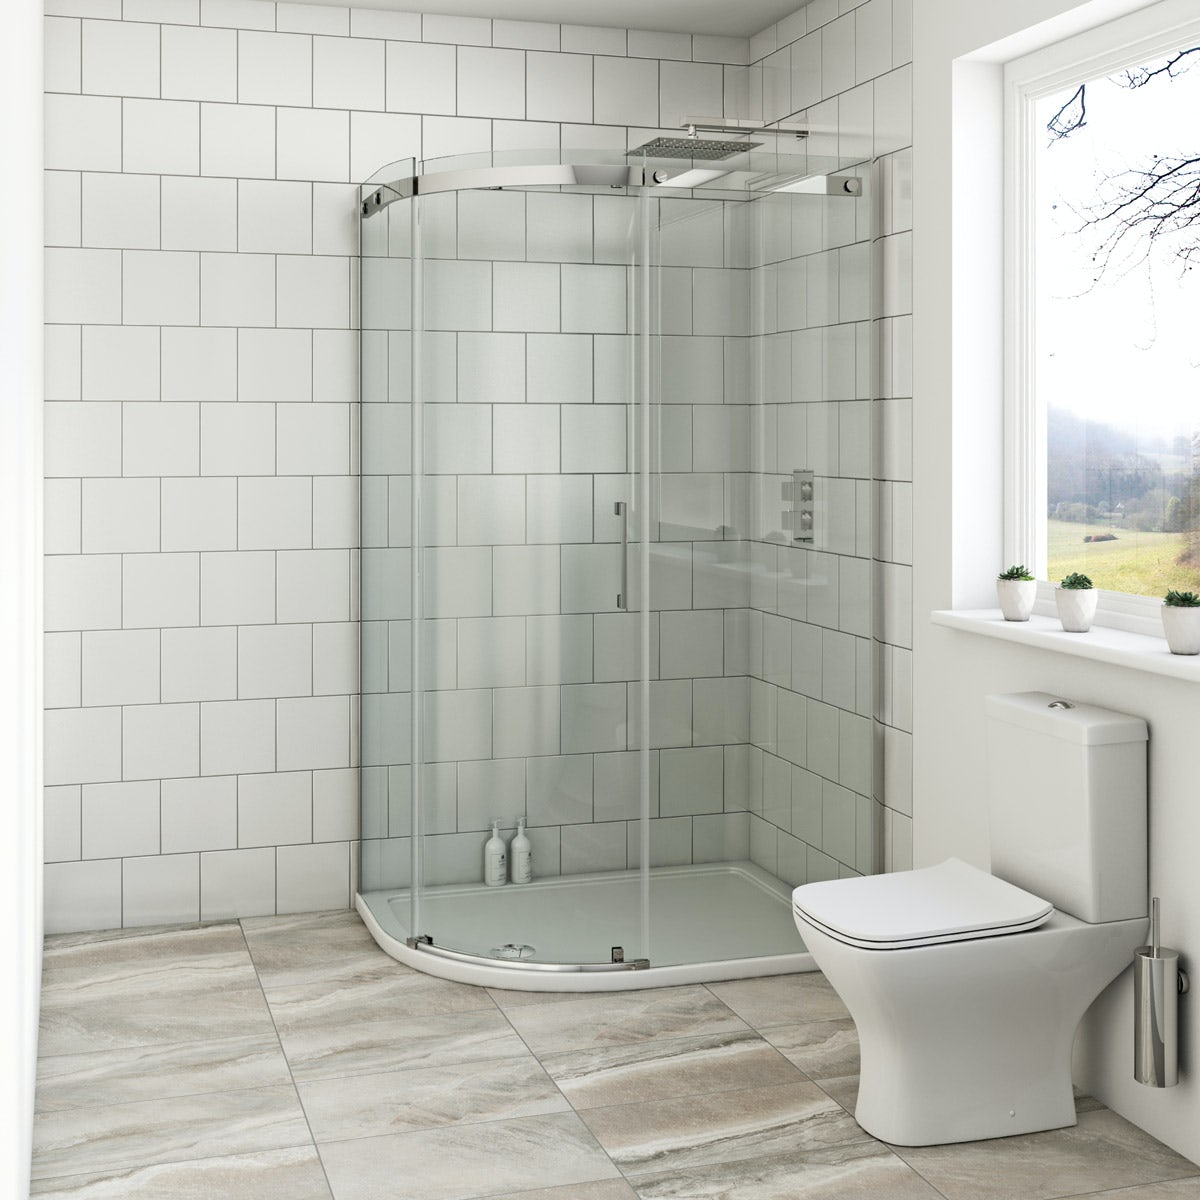 Mode Harrison 8mm left handed offset quadrant shower enclosure with stone tray 900 x 760